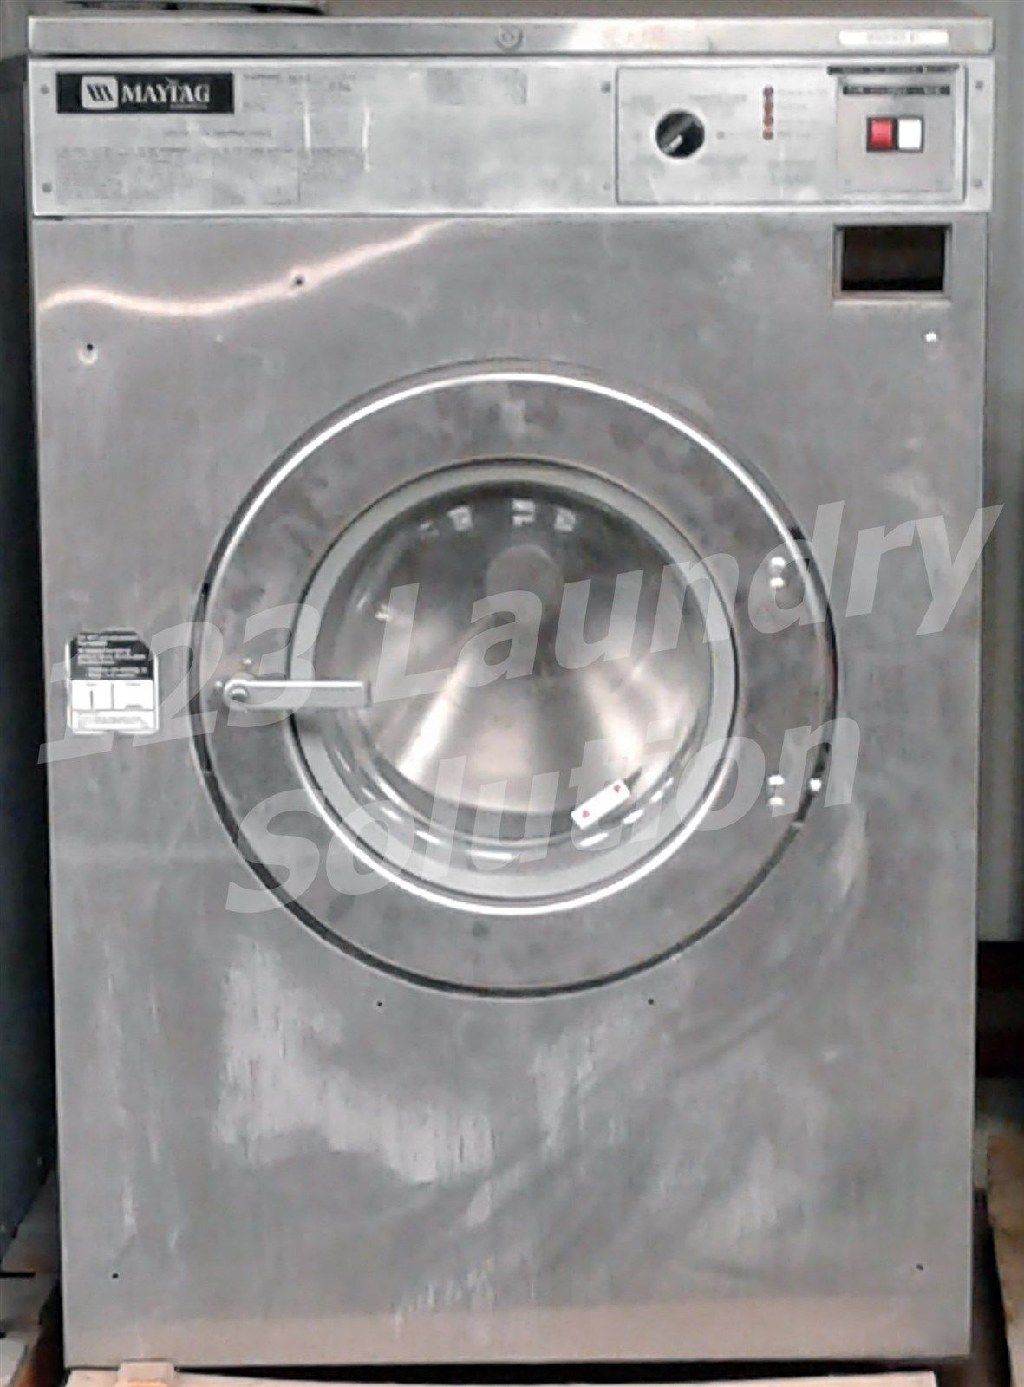 Maytag Washer Extractor ~ For sale maytag front load washer opl lb mfr ph